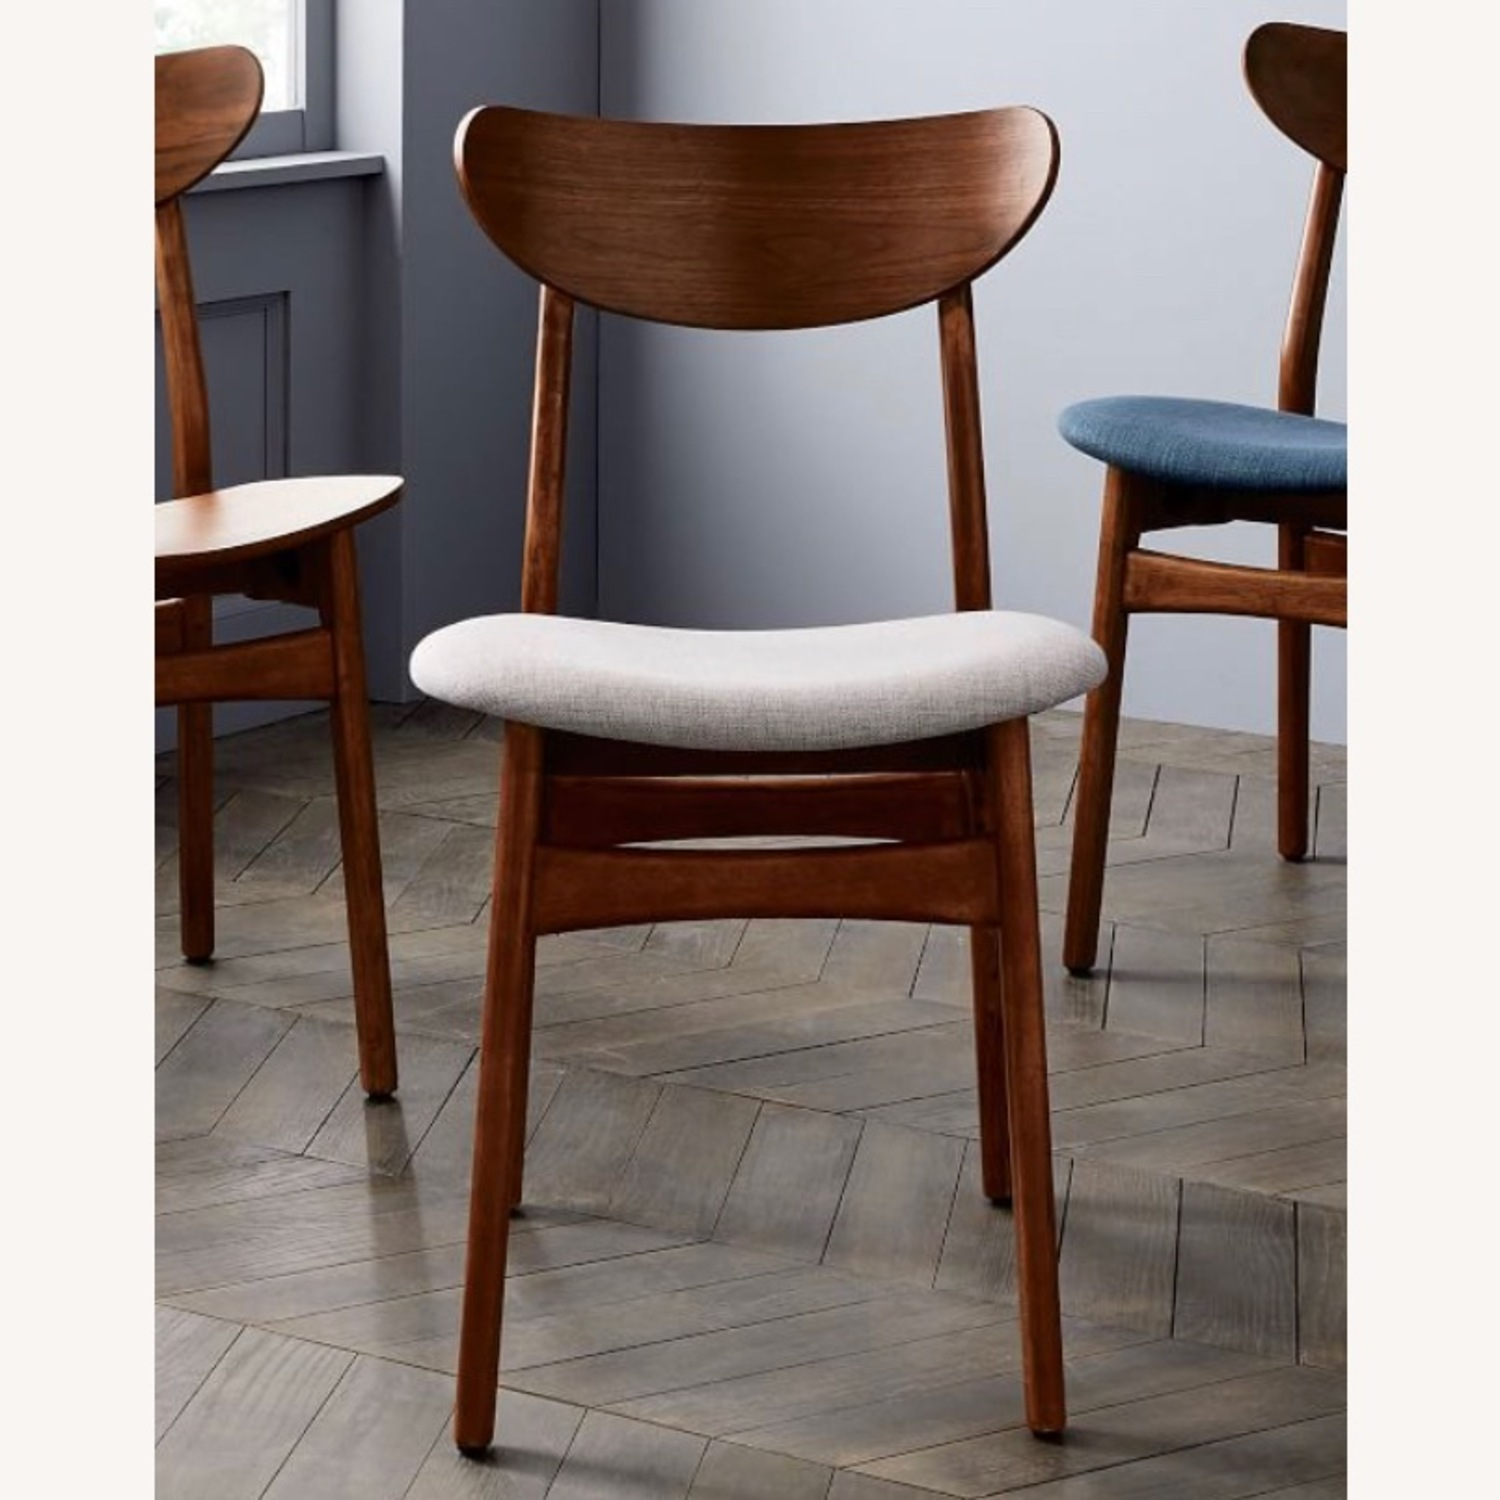 West Elm Classic Cafe Dining Chairs Set of 2 - image-3